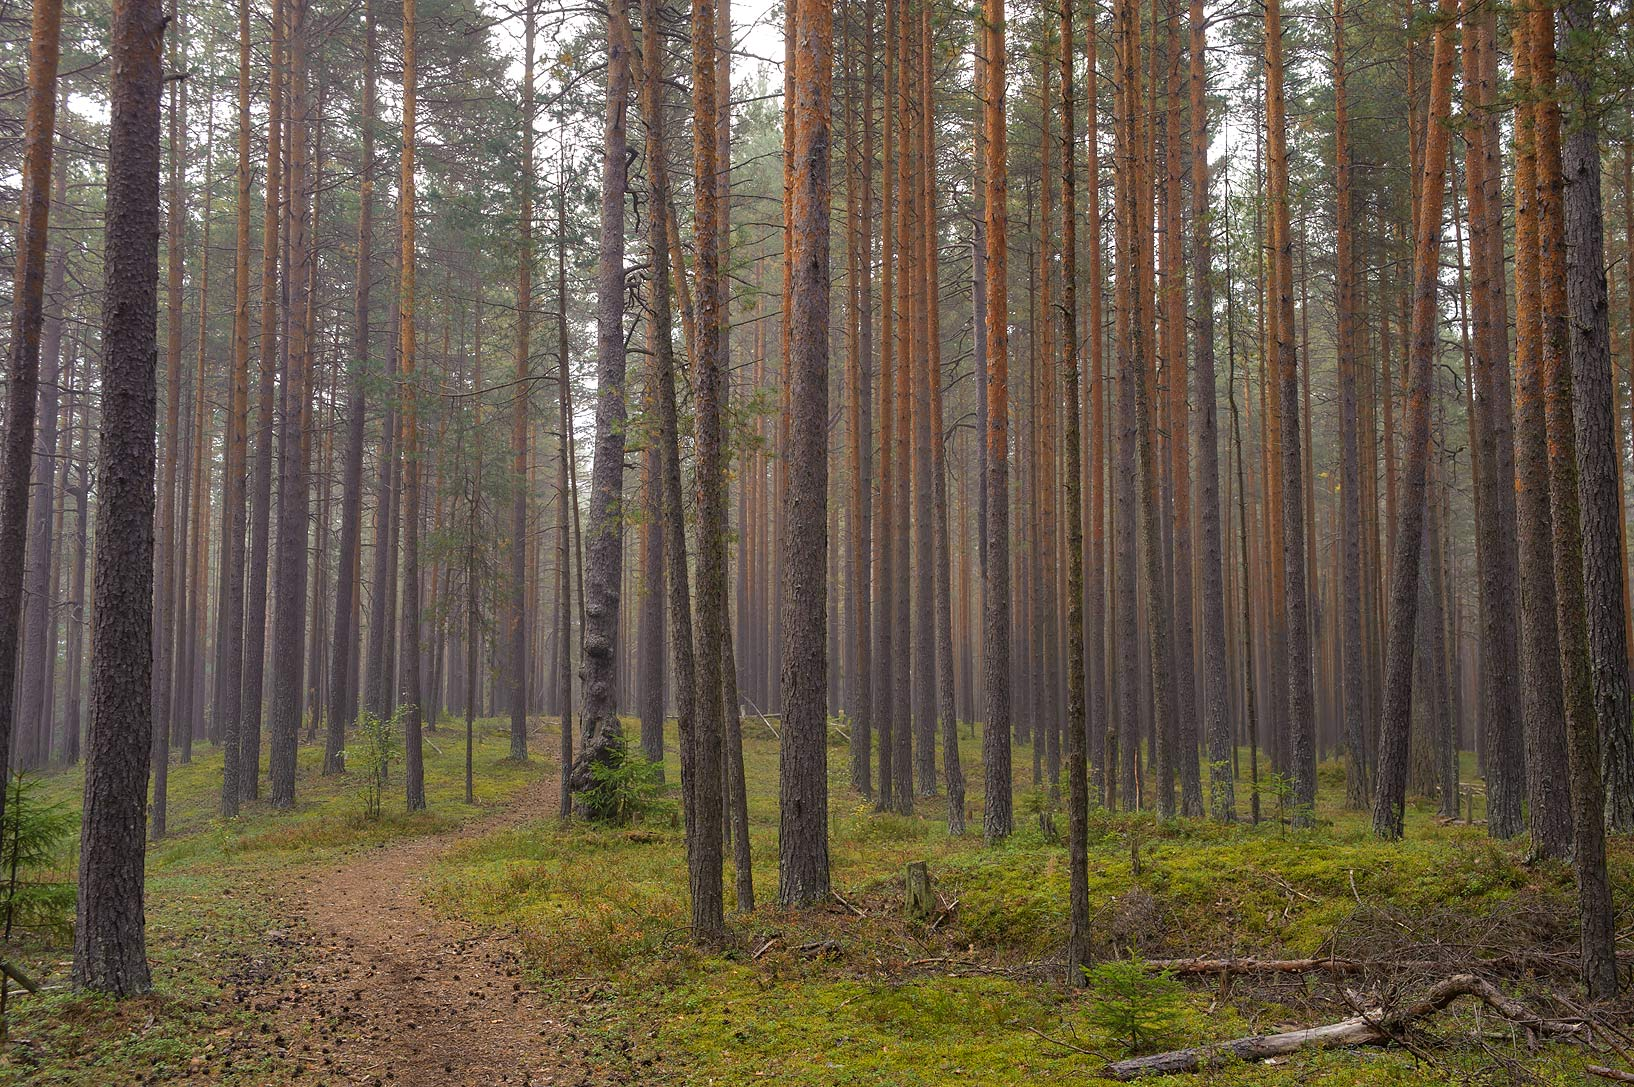 Pine tree trunks in Lembolovo, 40 miles north from St.Petersburg. Russia